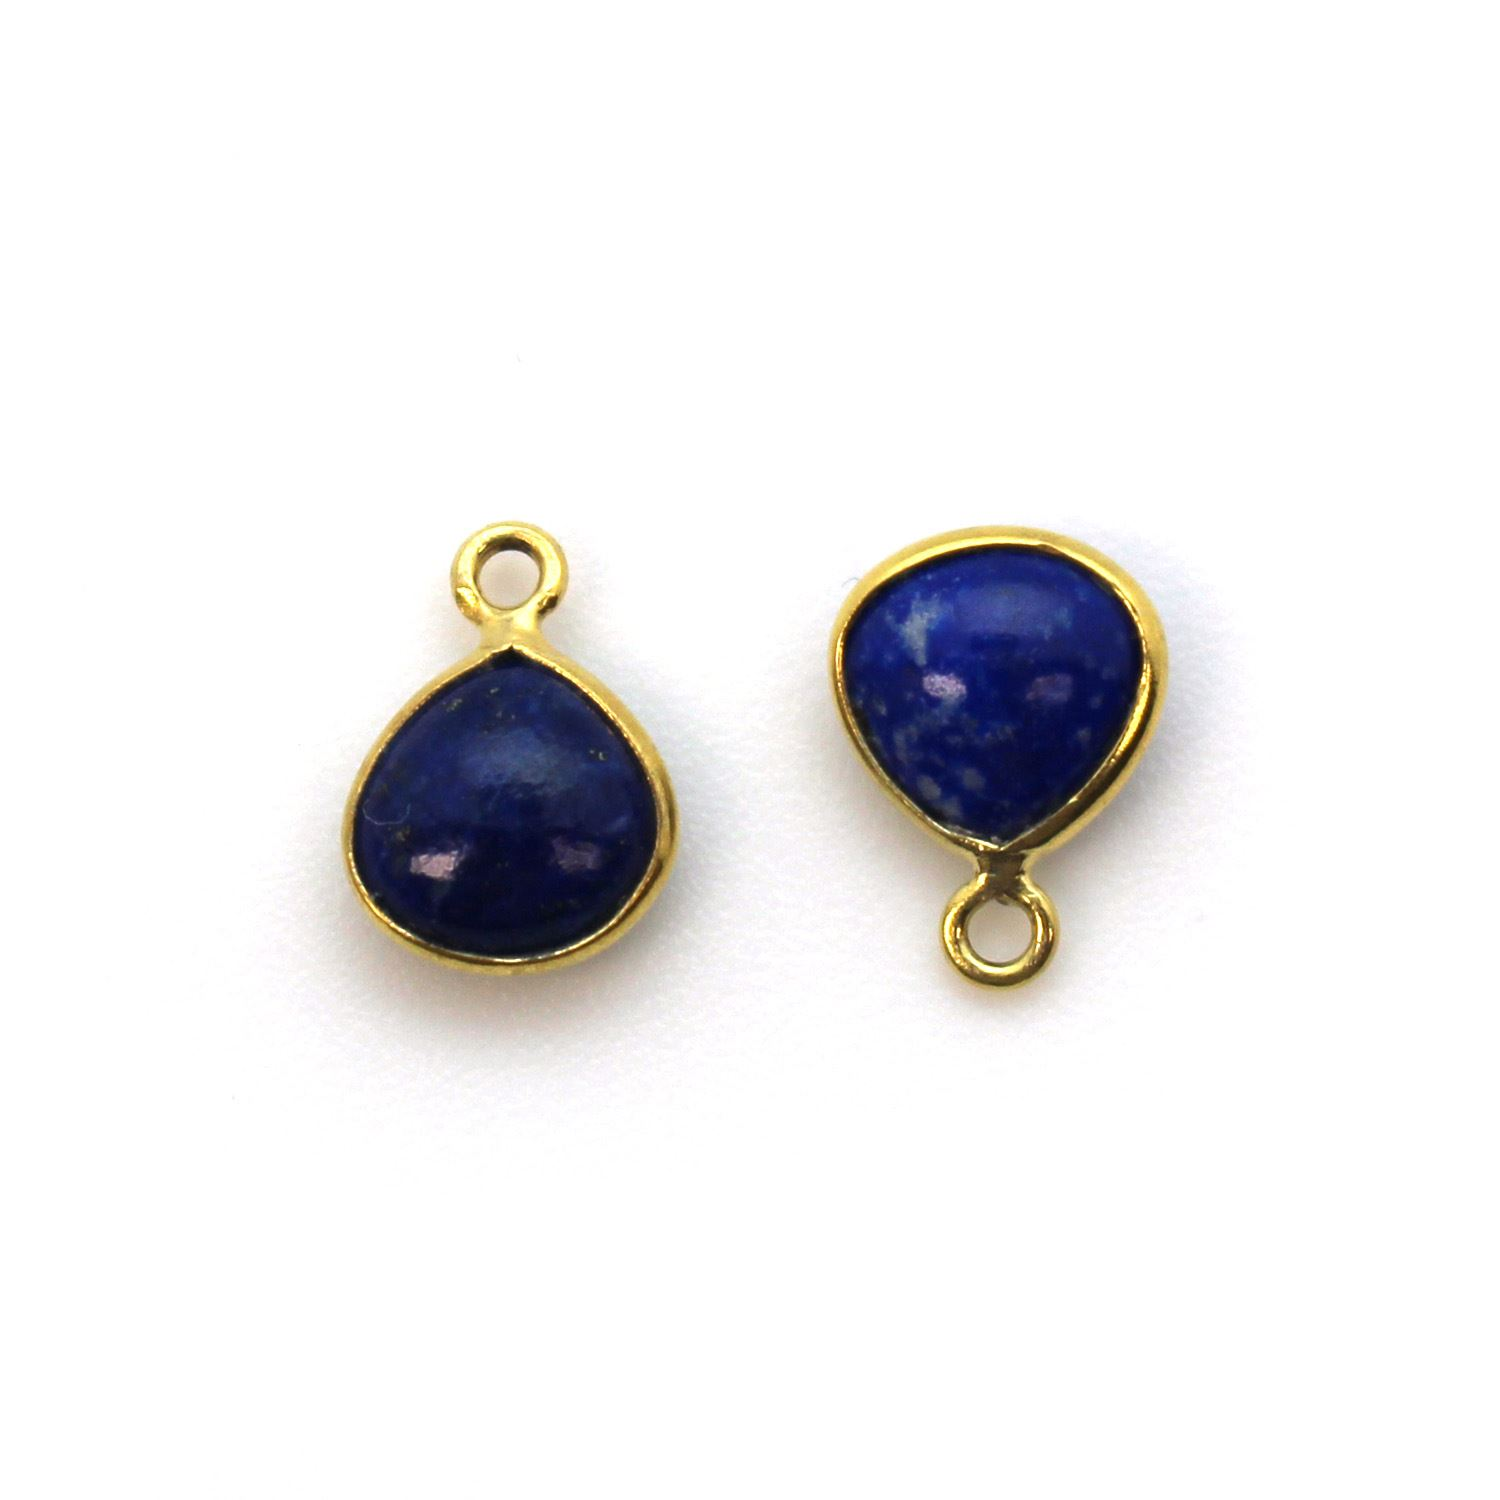 Bezel Charm Pendant - Gold Plated Sterling Silver Charm - Natural Lapis Lazuli - Tiny Heart Shape -7mm